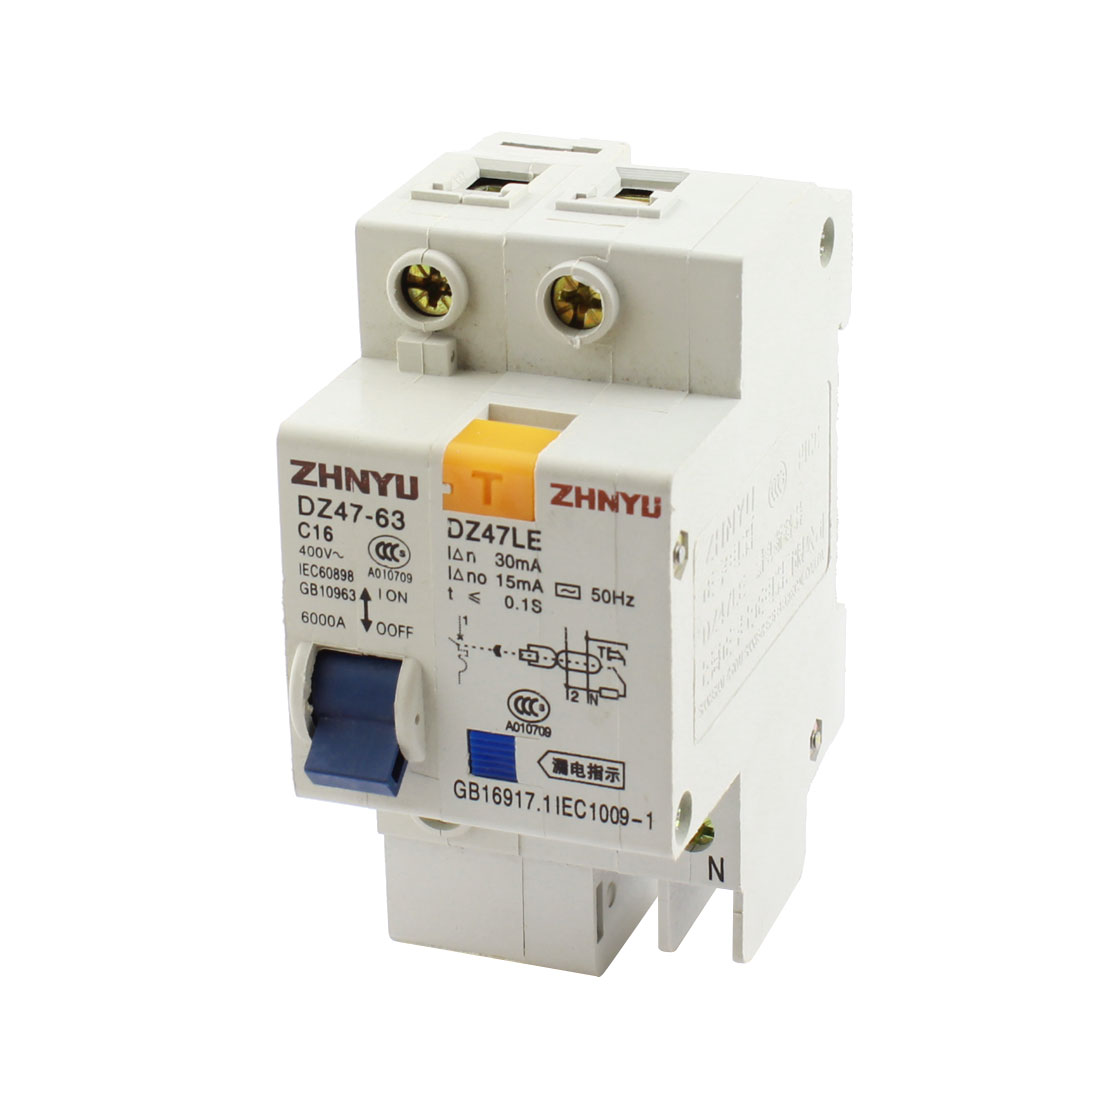 AC 400V 16A 35mm DIN Rail Mounting On/Off Switch 2-Pole 4 Screw Teminal Electric Leakage Protector Mini Circuit Breaker